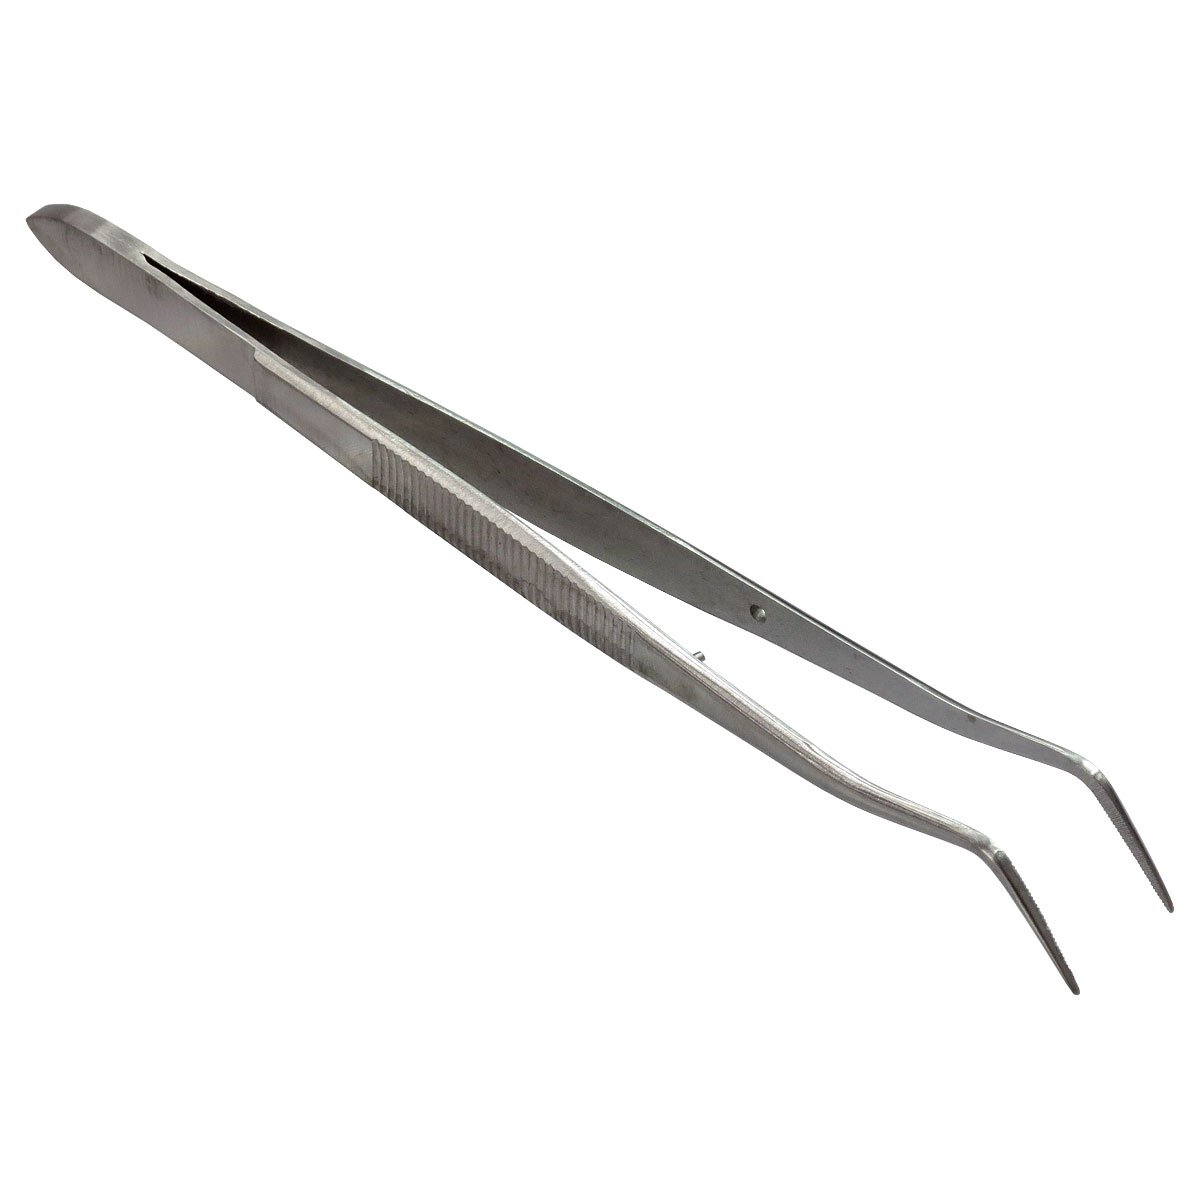 HTS 171L6 6.25' Curved Locking Stainless Steel College Tweezers Hobby Tool Supply